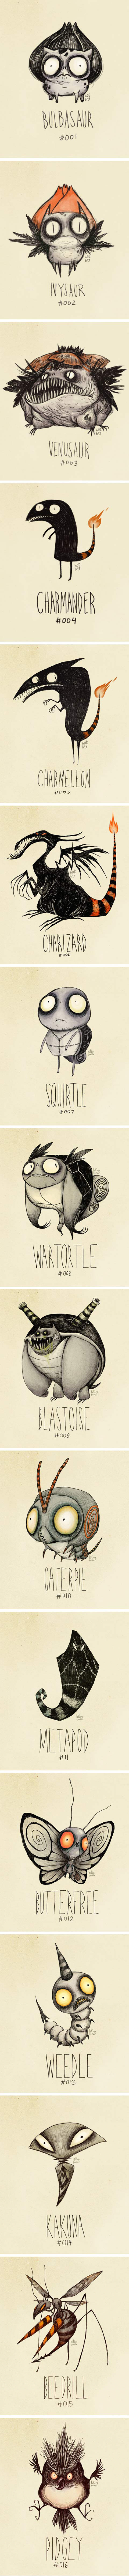 If Tim Burton designed the Pokemon characters, this is what they'd might look like.